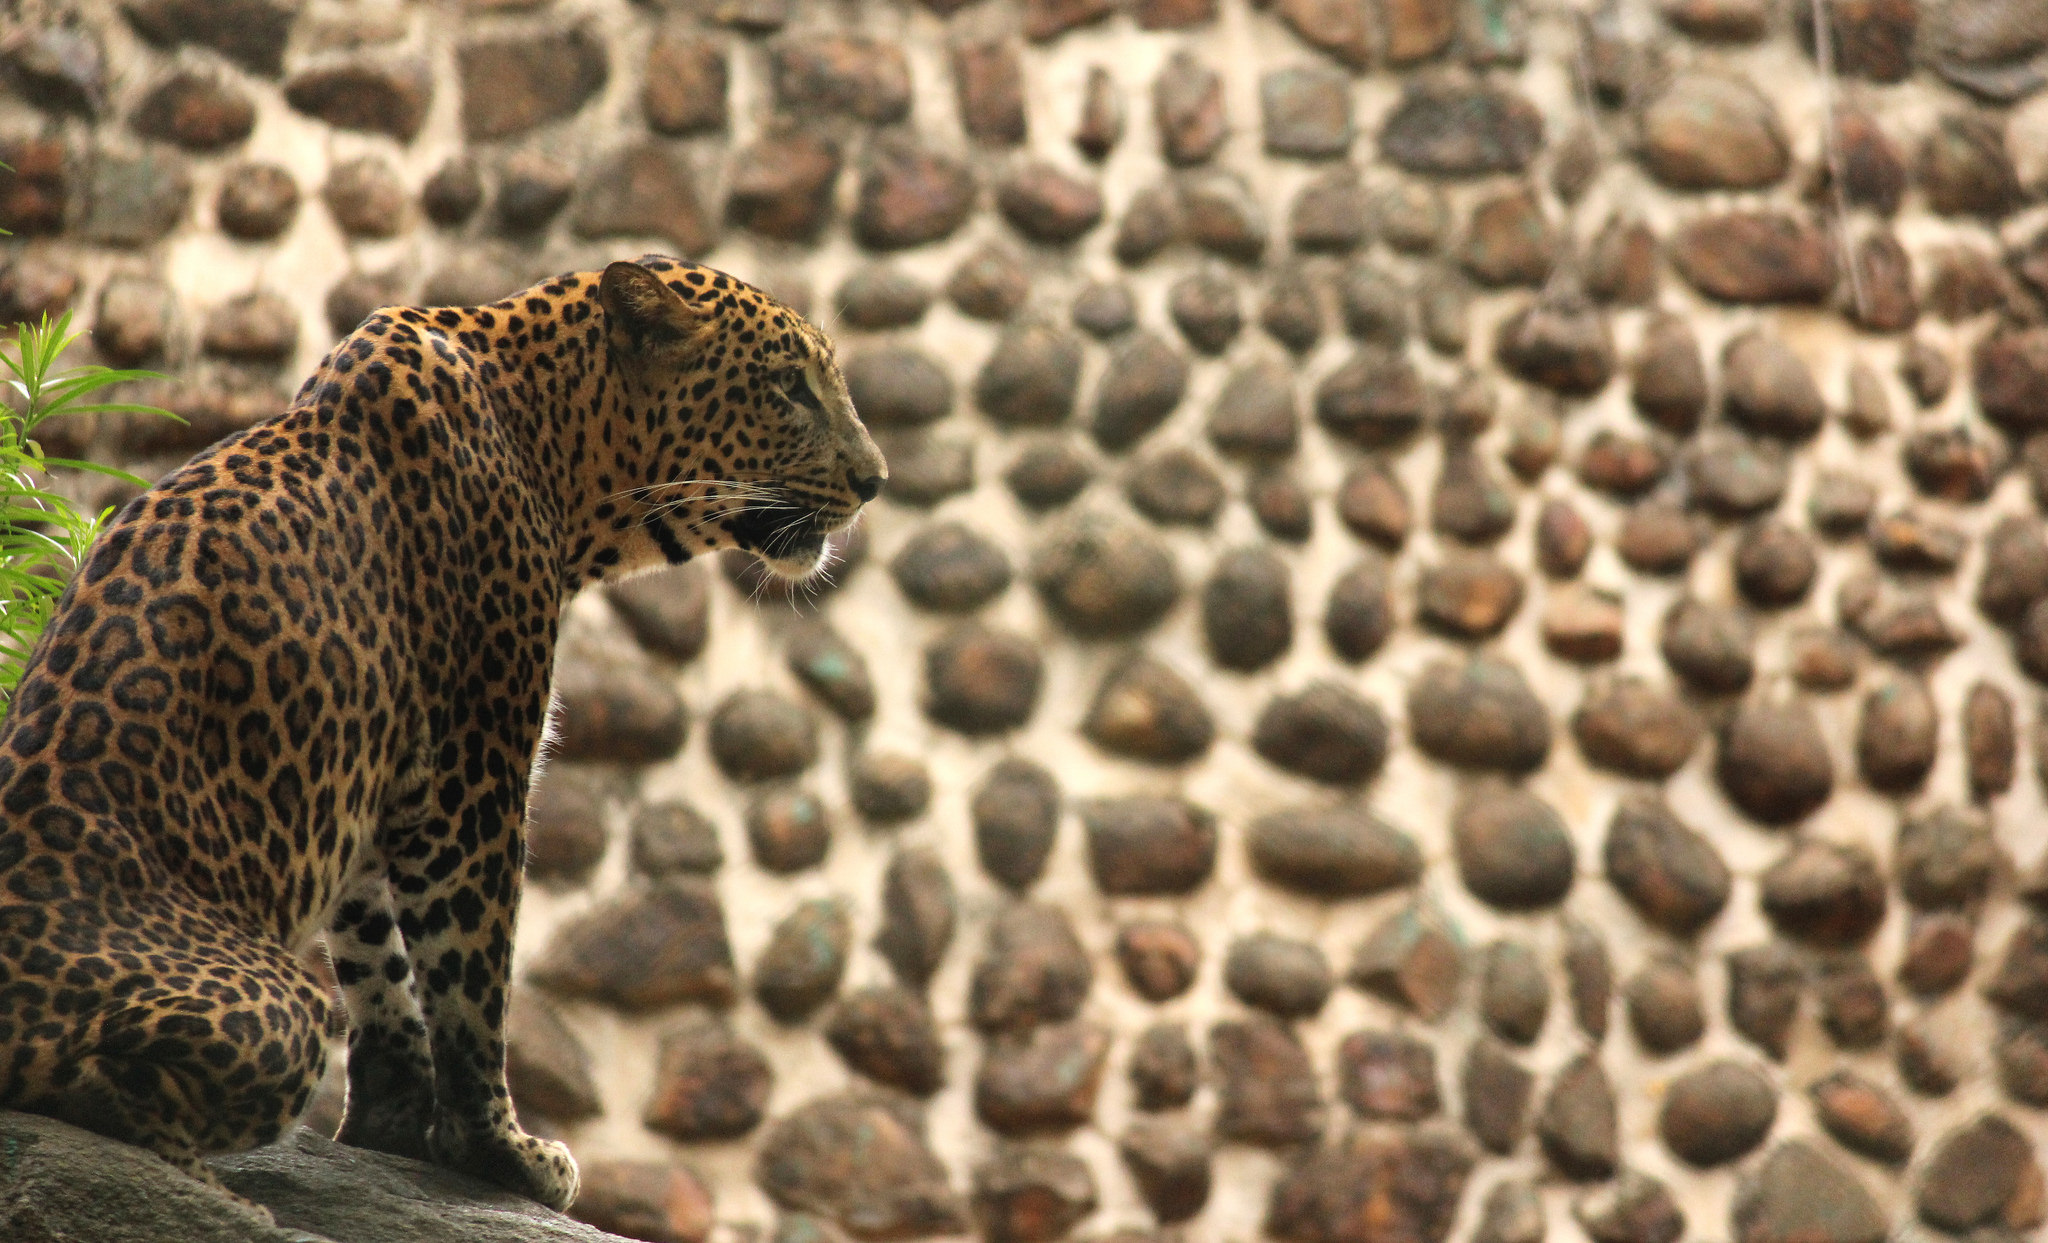 A leopard photographed at a zoo in Karnataka. Credit: sridharan01/Flickr, CC BY 2.0